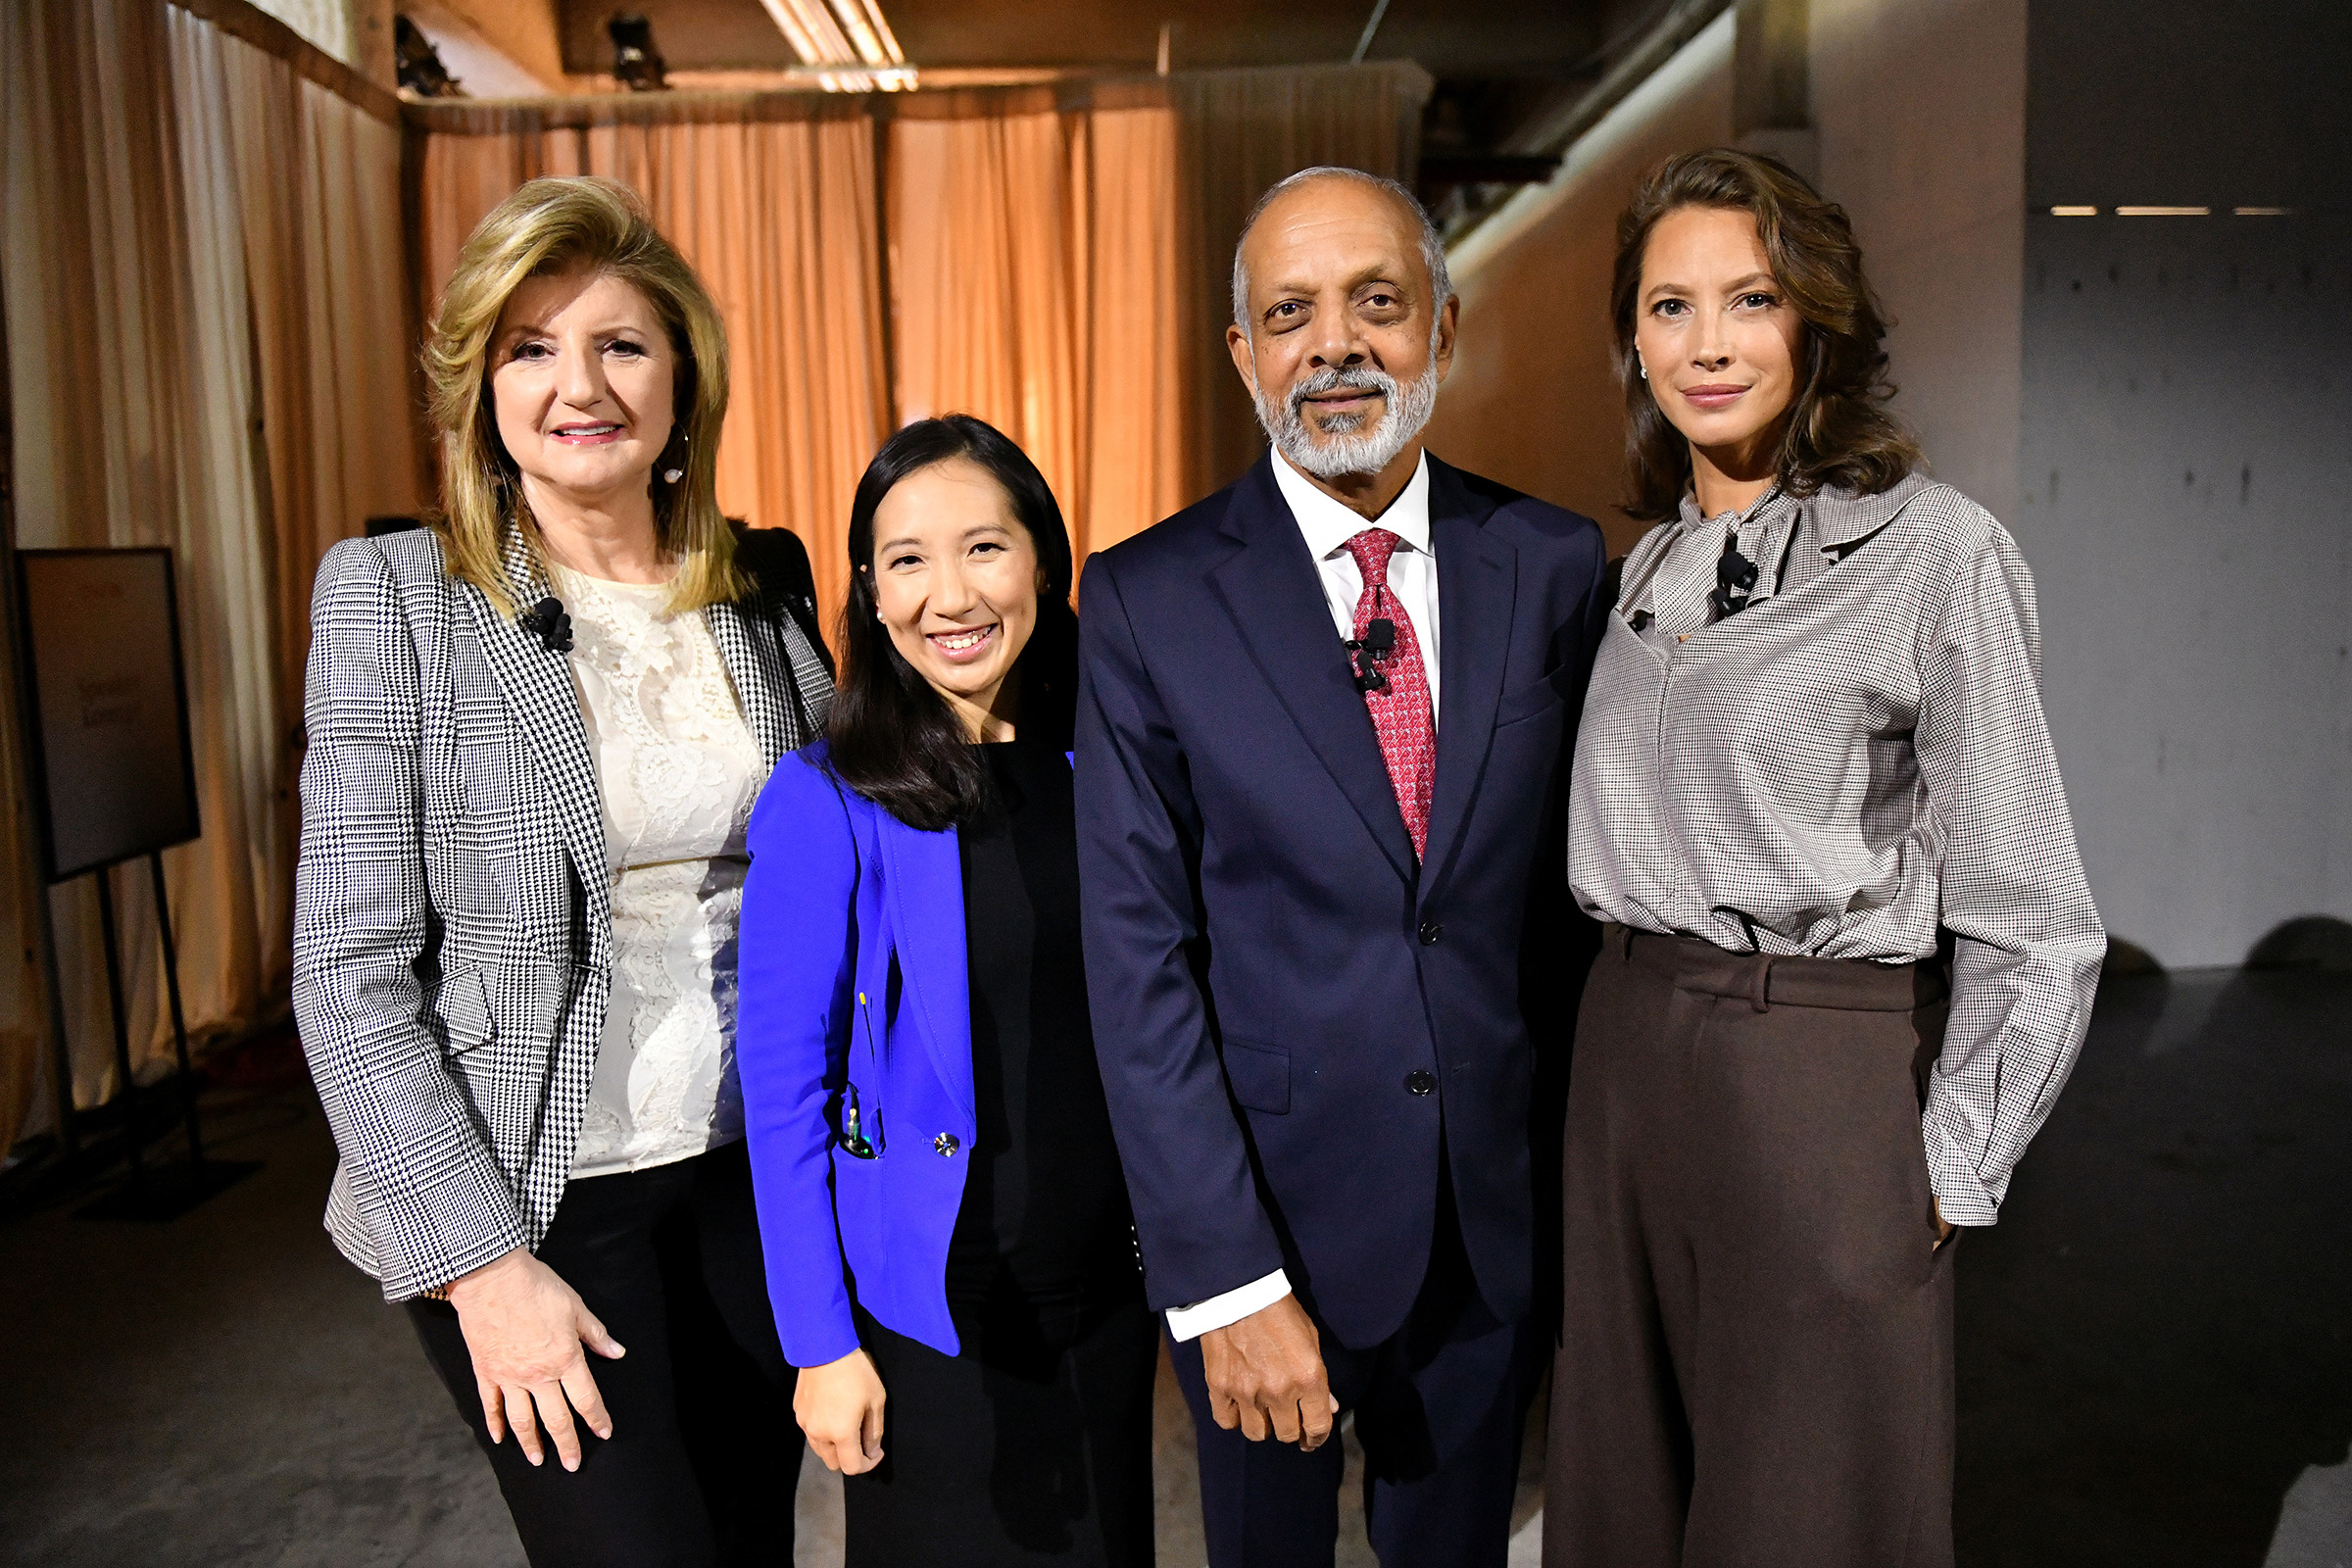 (L-R) Arianna Huffington, Dr. Leana Wen, Dr. Naveen Rao and Christy Turlington Burns pose backstage during the TIME 100 Health Summit at Pier 17 in New York City on Oct. 17, 2019.